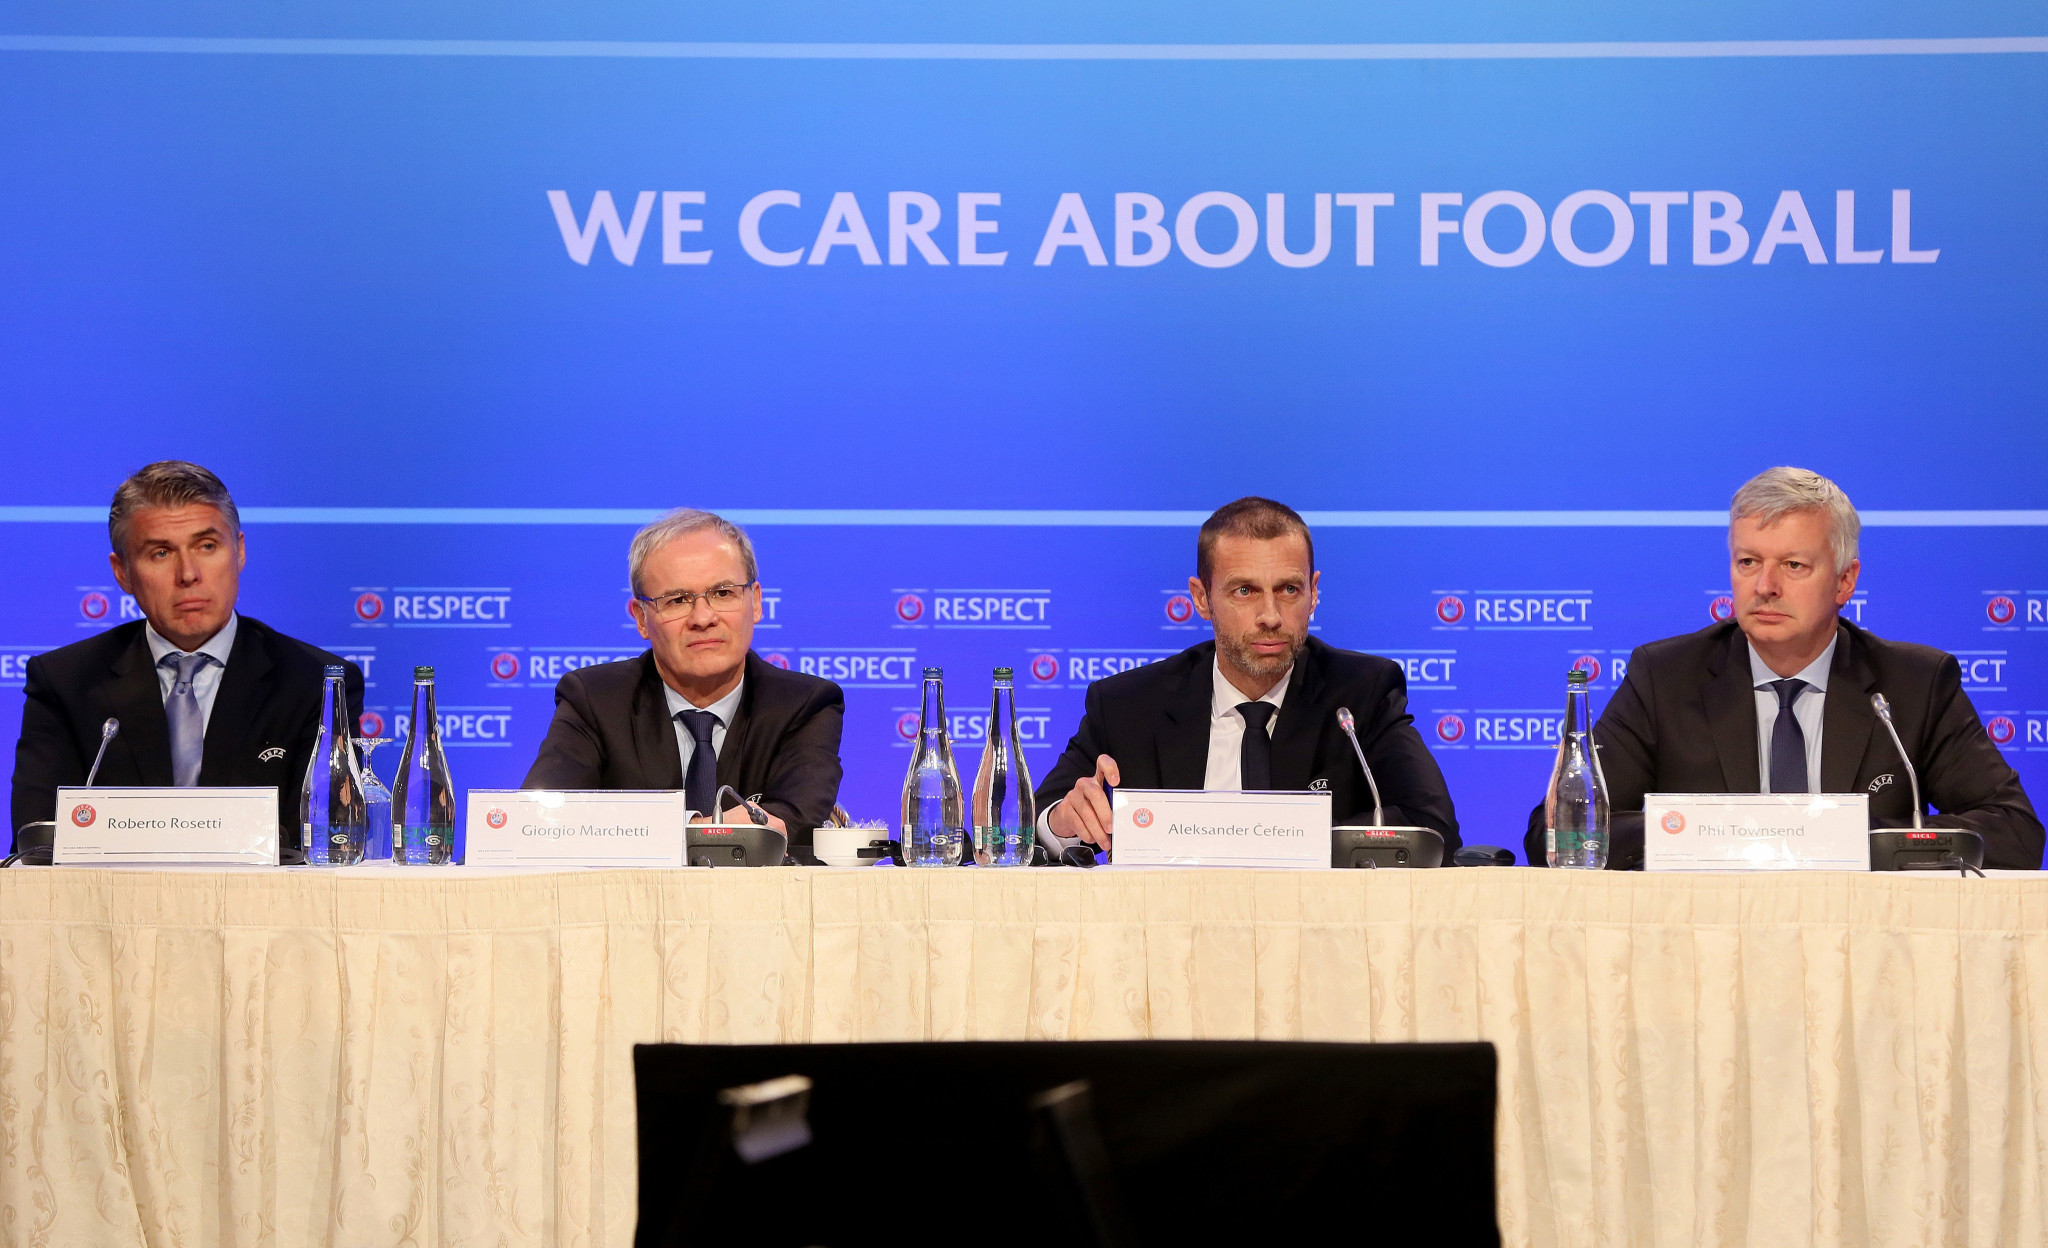 UEFA President Aleksander Čeferin, centre right, made his comments about the possible World Cup bid between Spain, Portugal and Morocco during a press conference in Dublin ©Getty Images